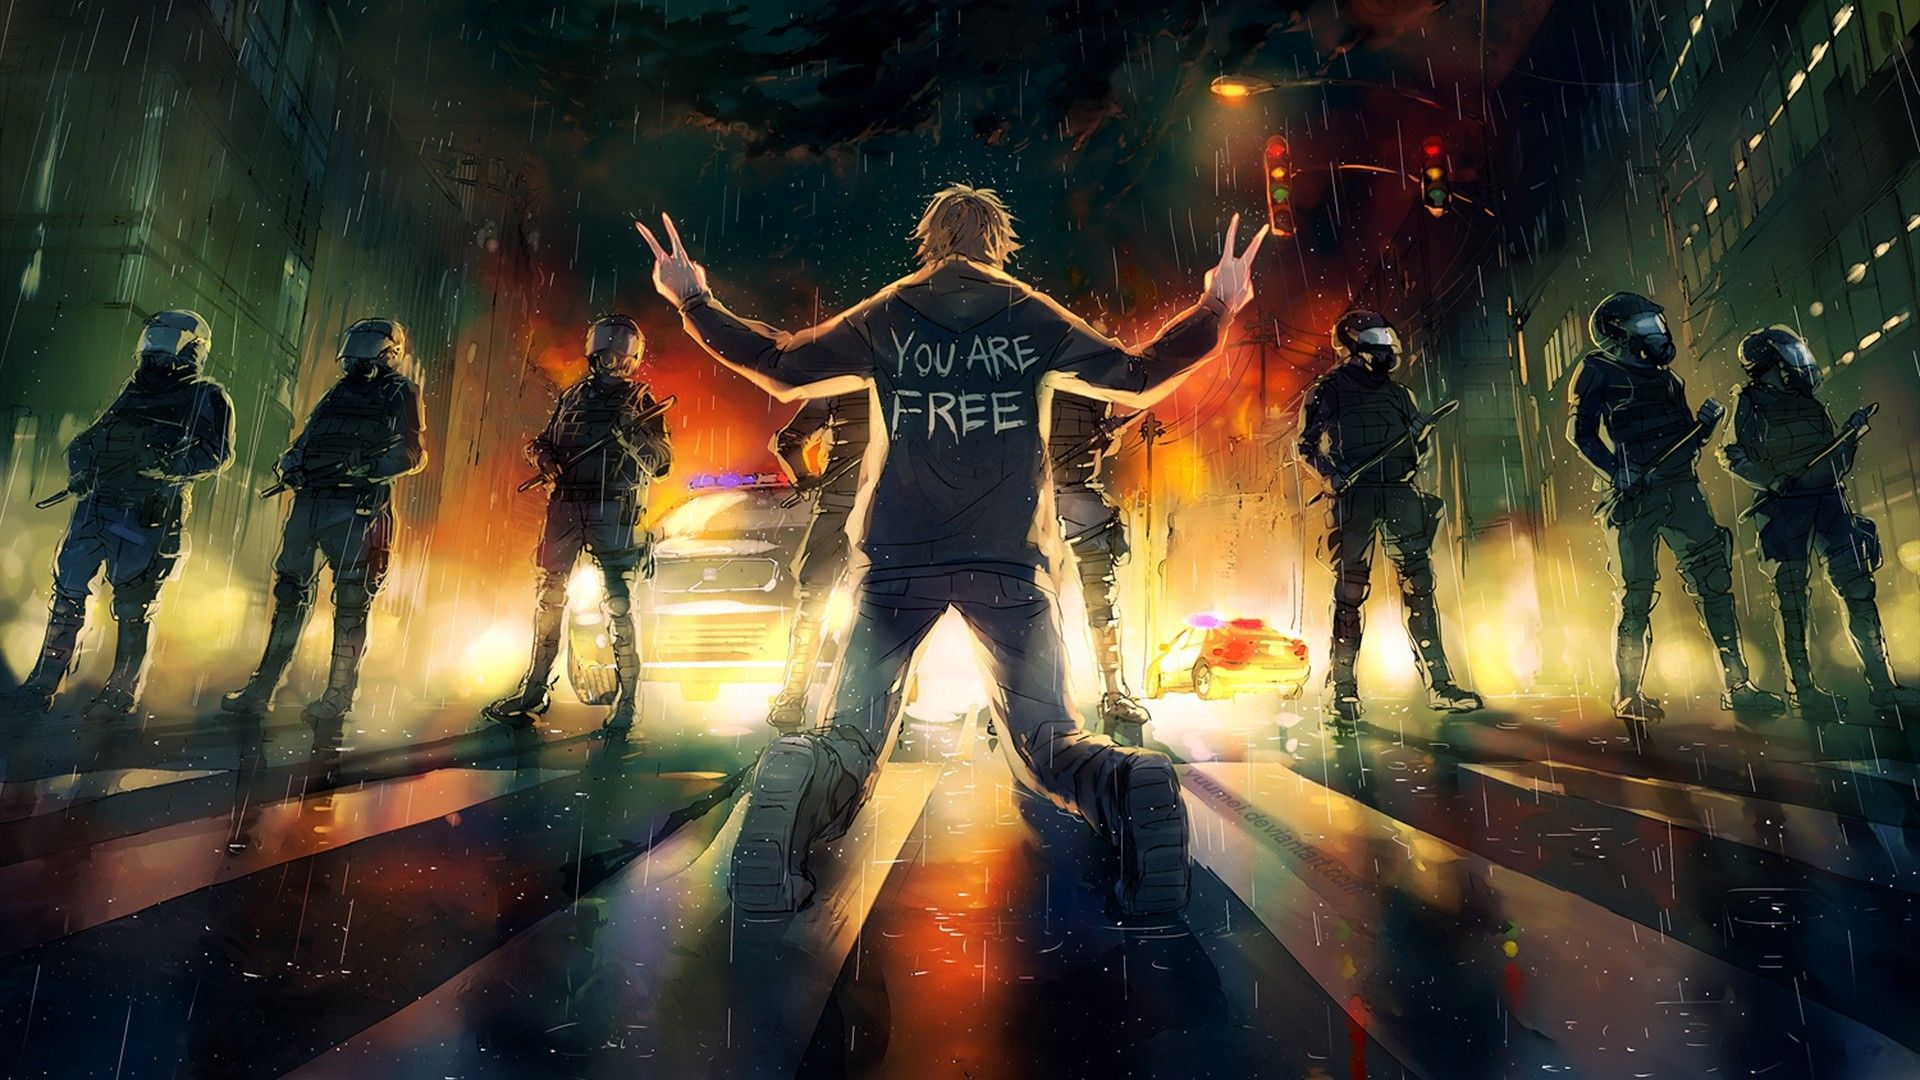 Fighting For Freedom Wallpaper Fisheye Placebo Fantasy Artist Art